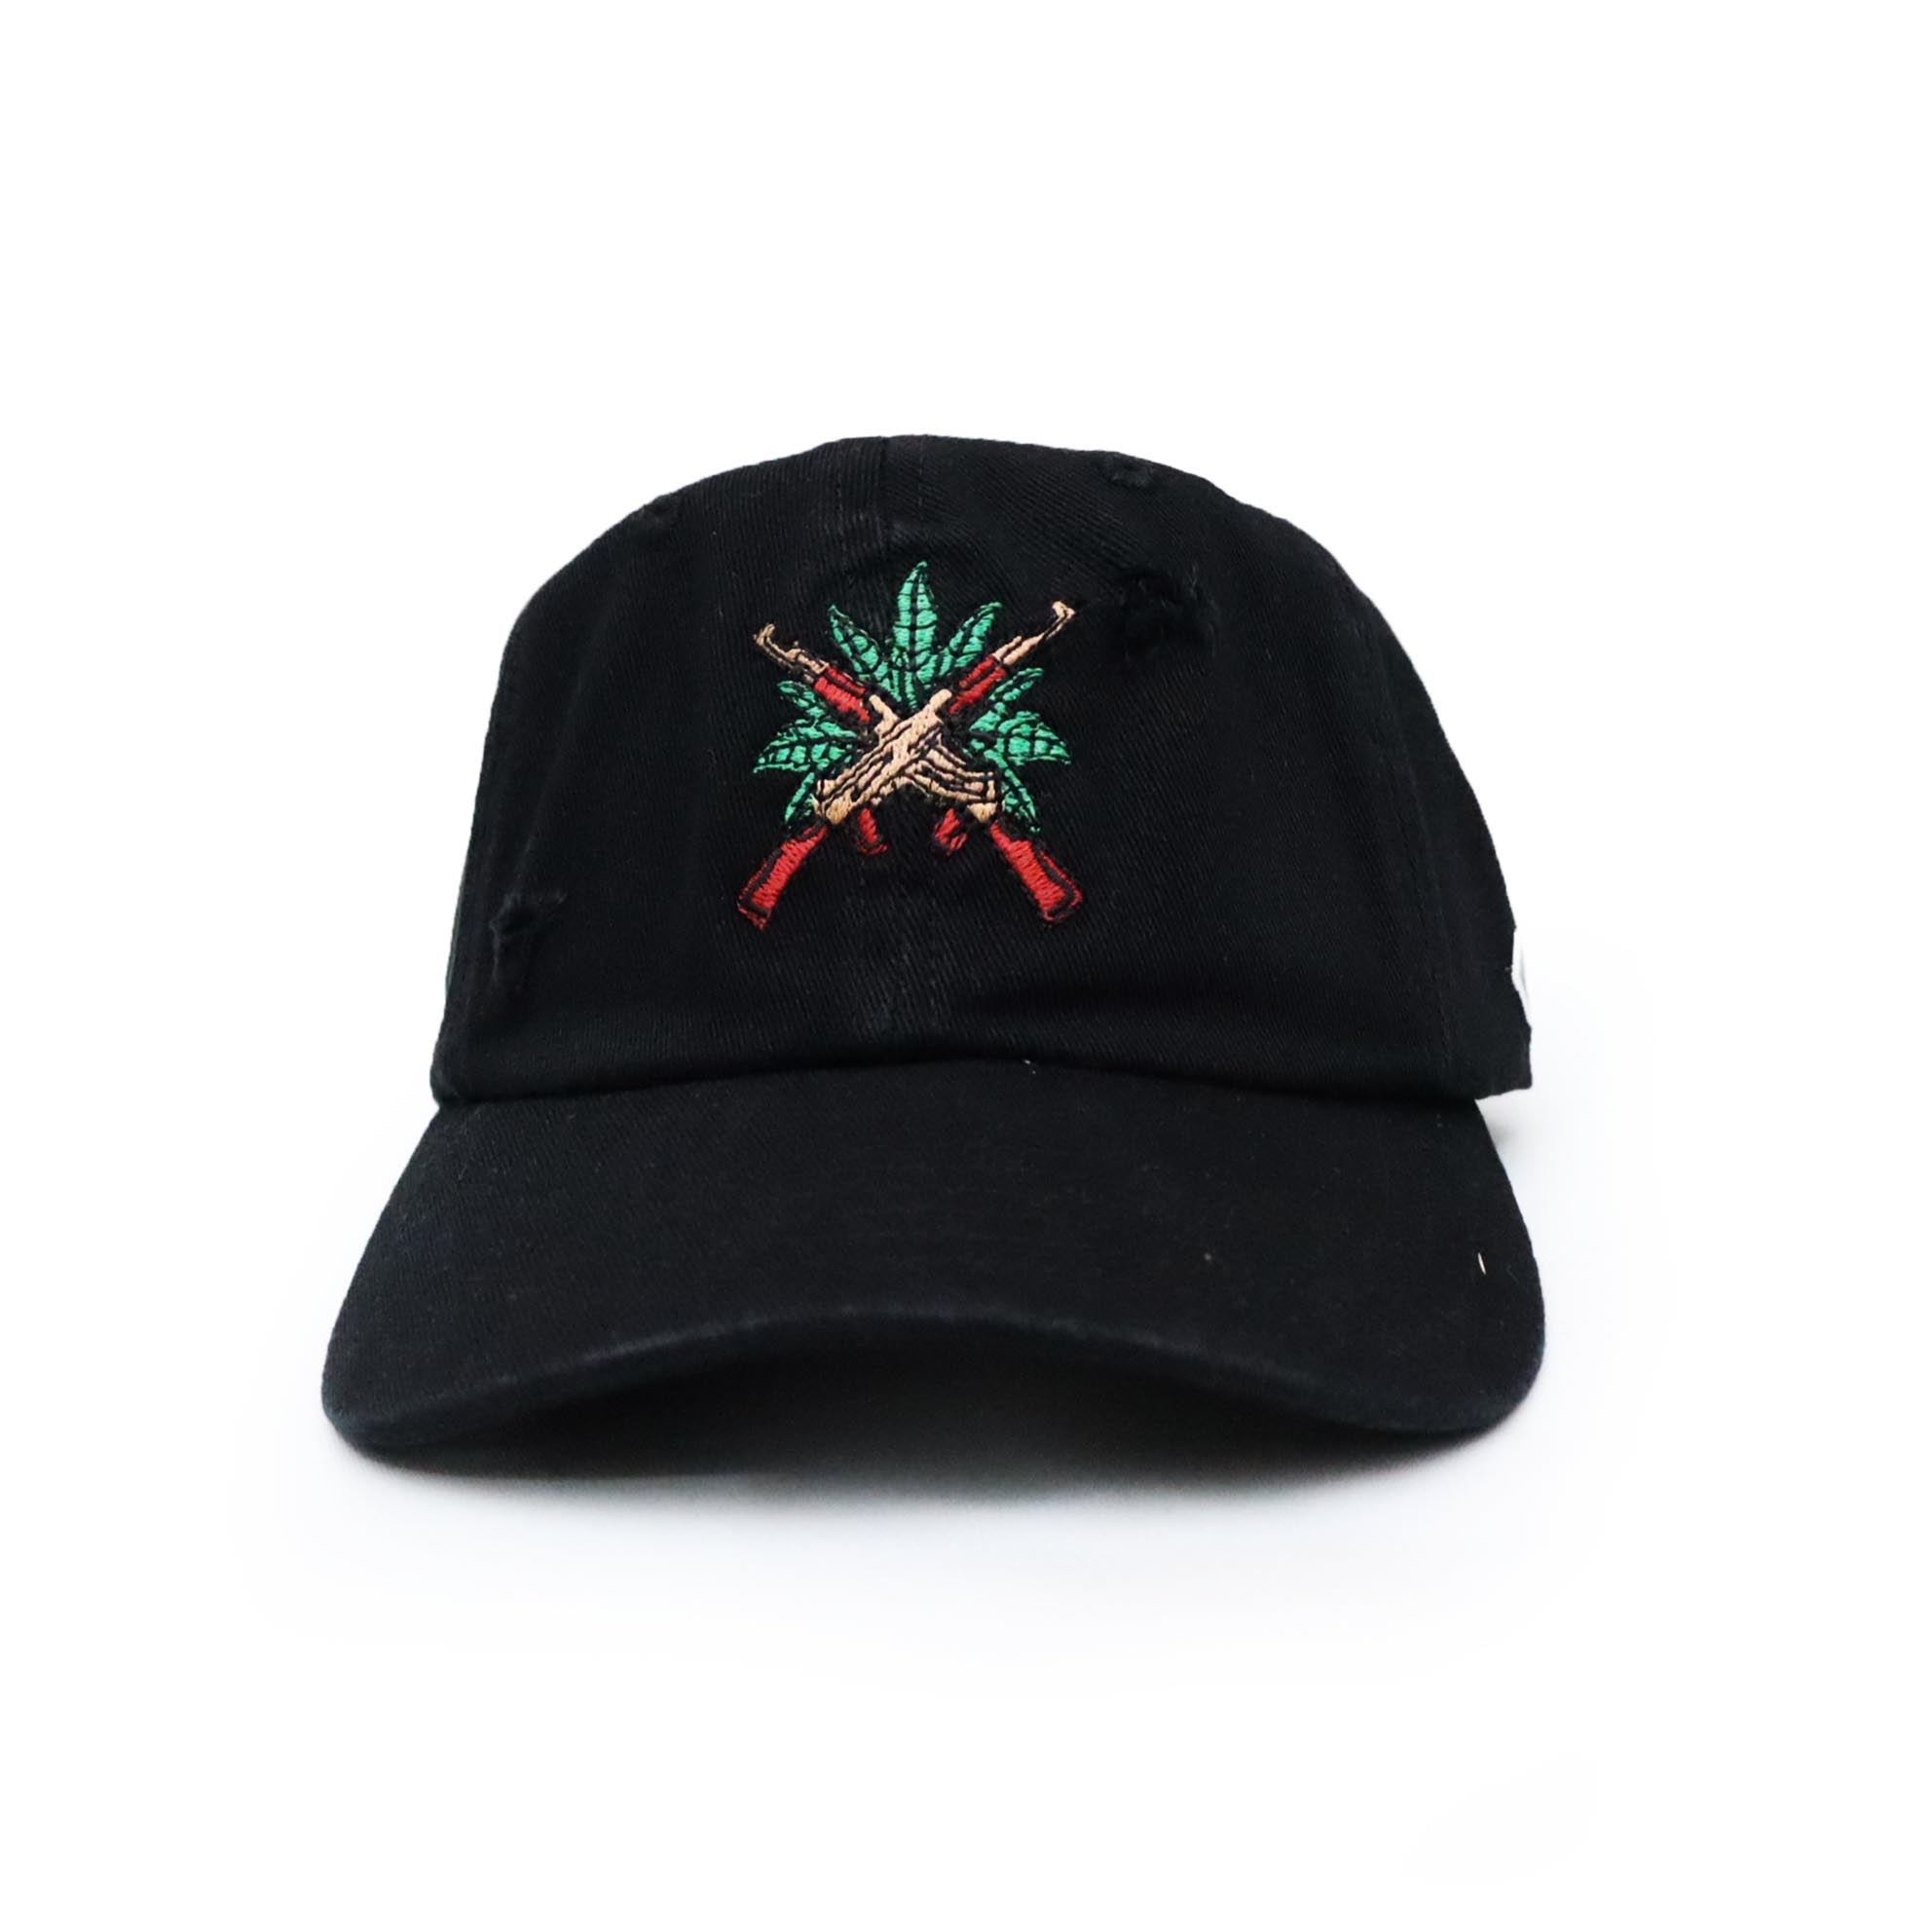 Boné Other Culture Dad Hat Plants and Toys - Preto